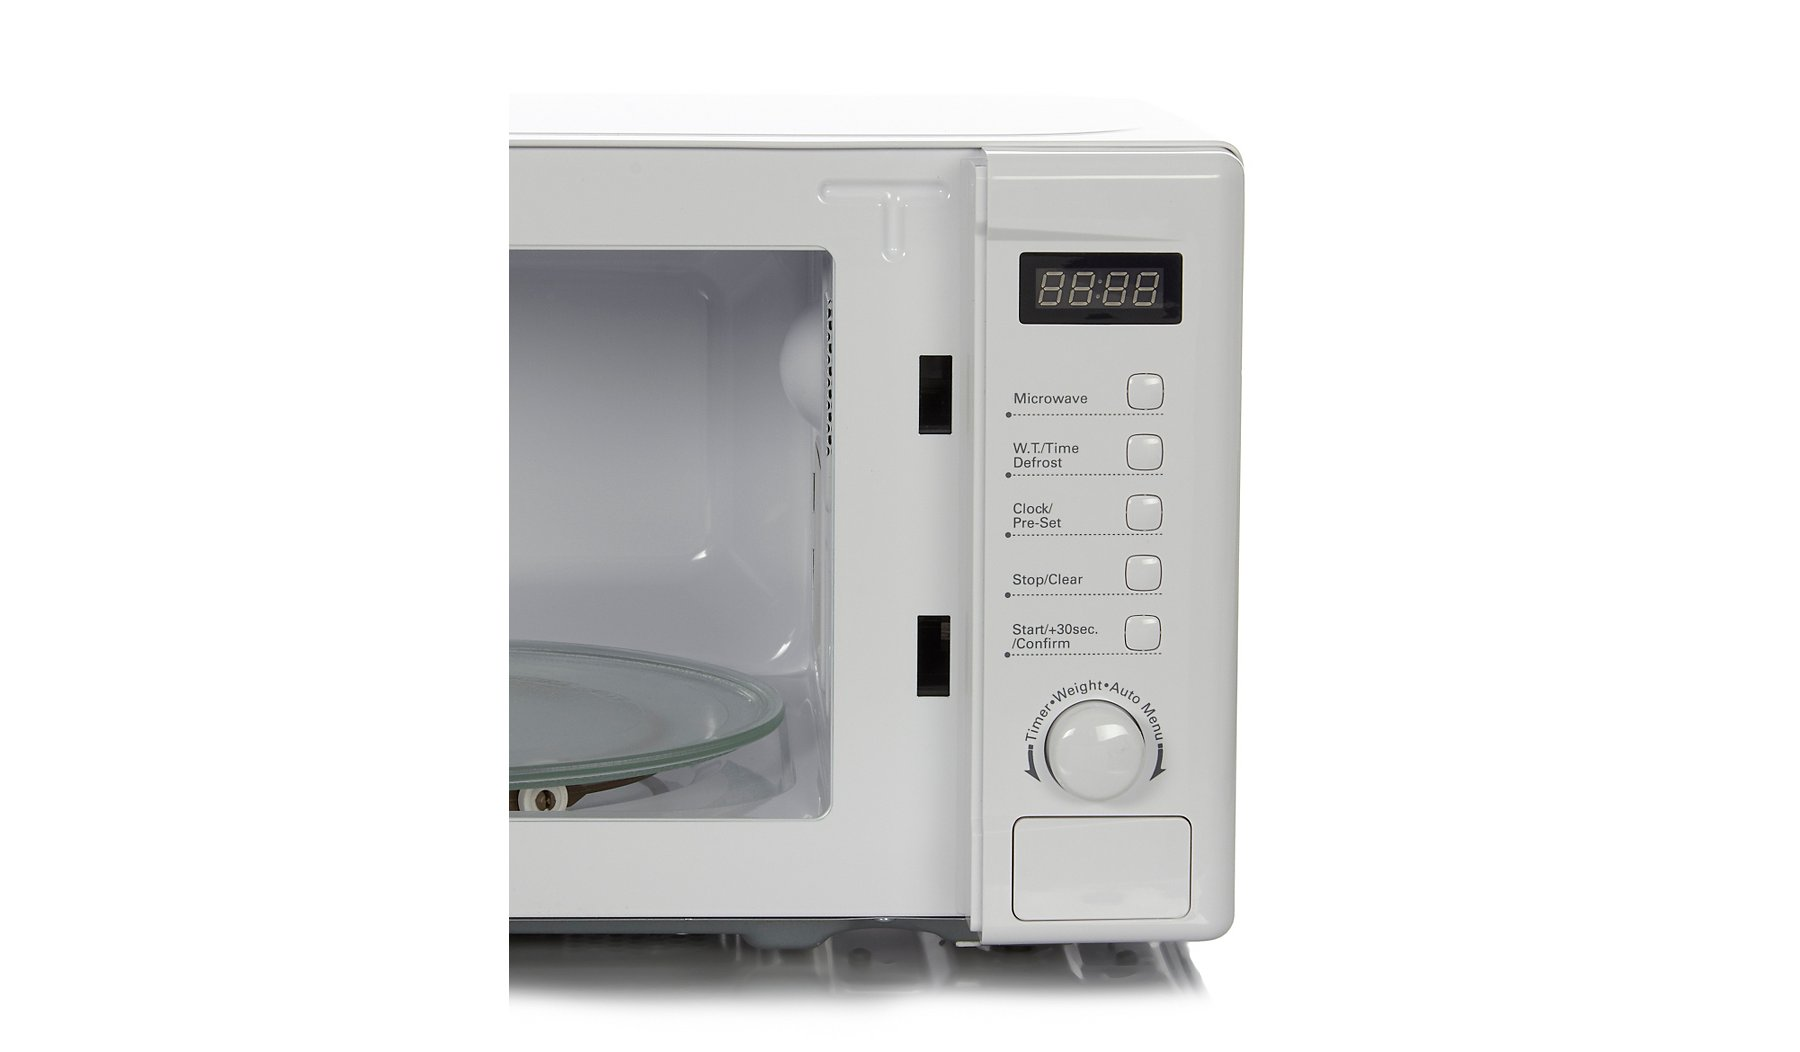 Uncategorized Asda Kitchen Appliances george home digital microwave 17 litres garden at asda